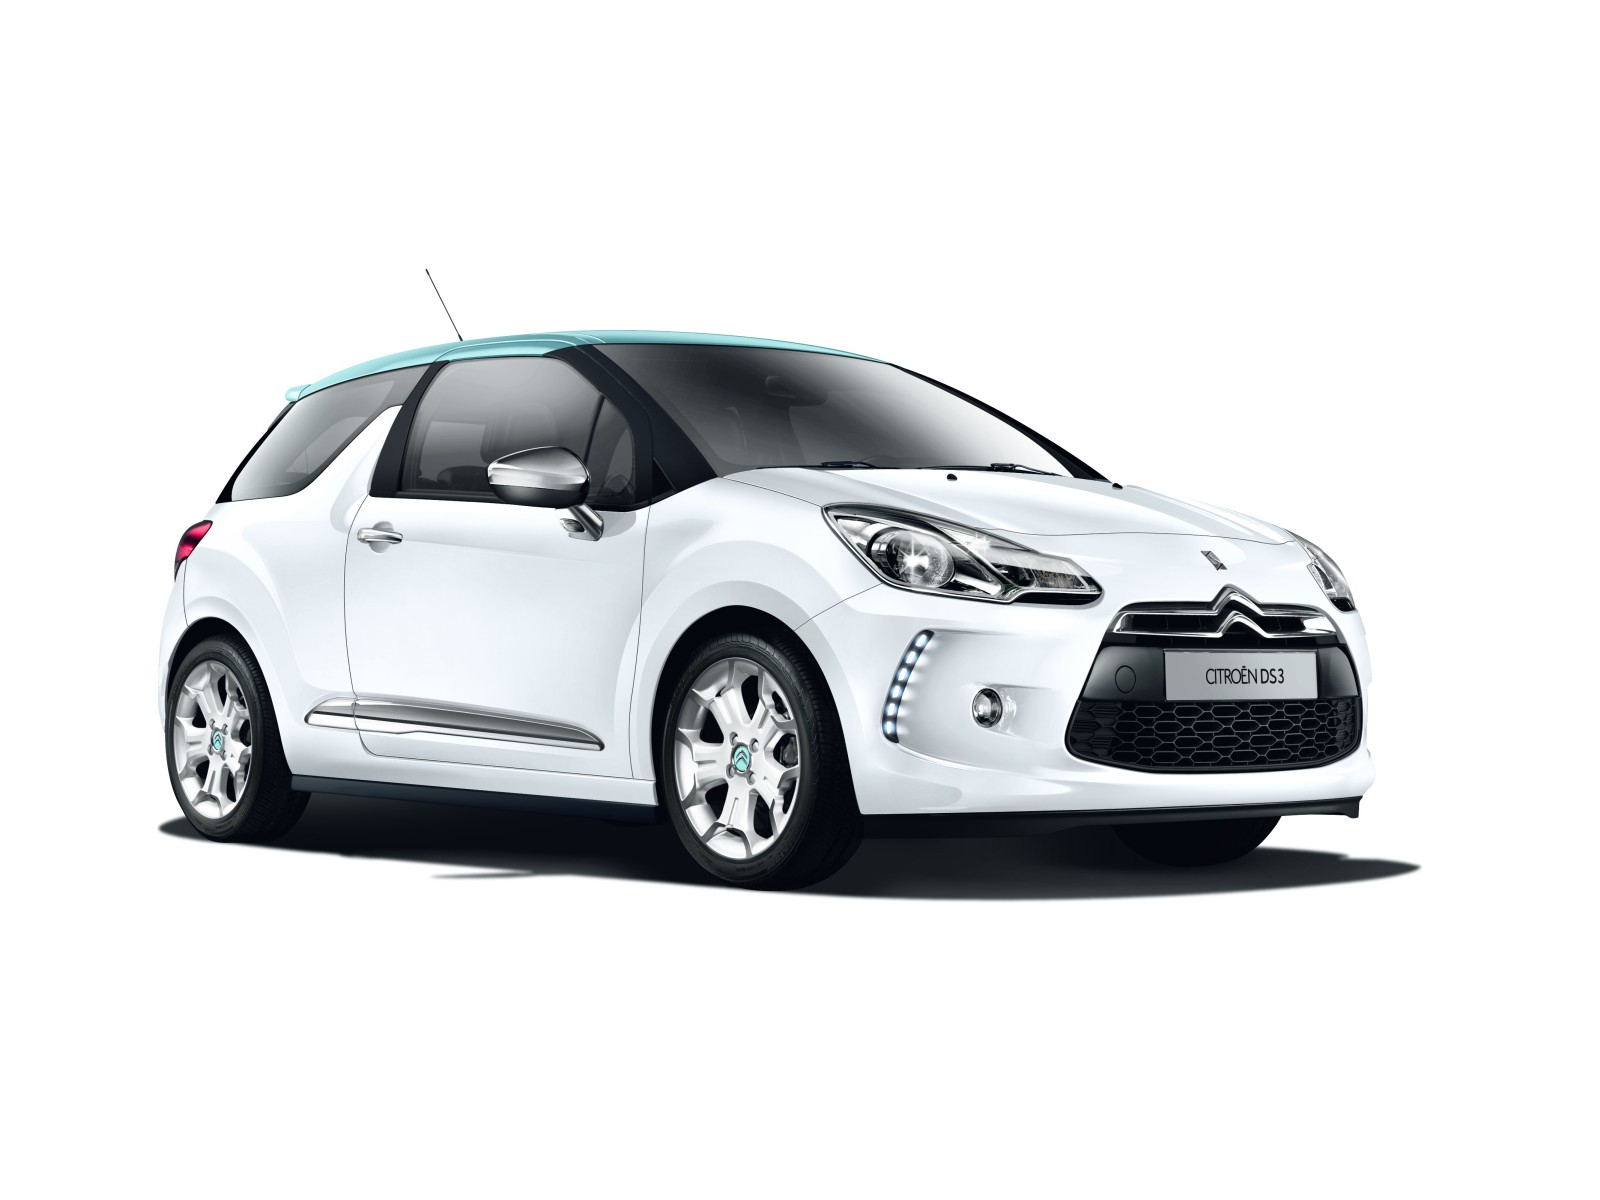 2010 Citroen DS3 Pictures